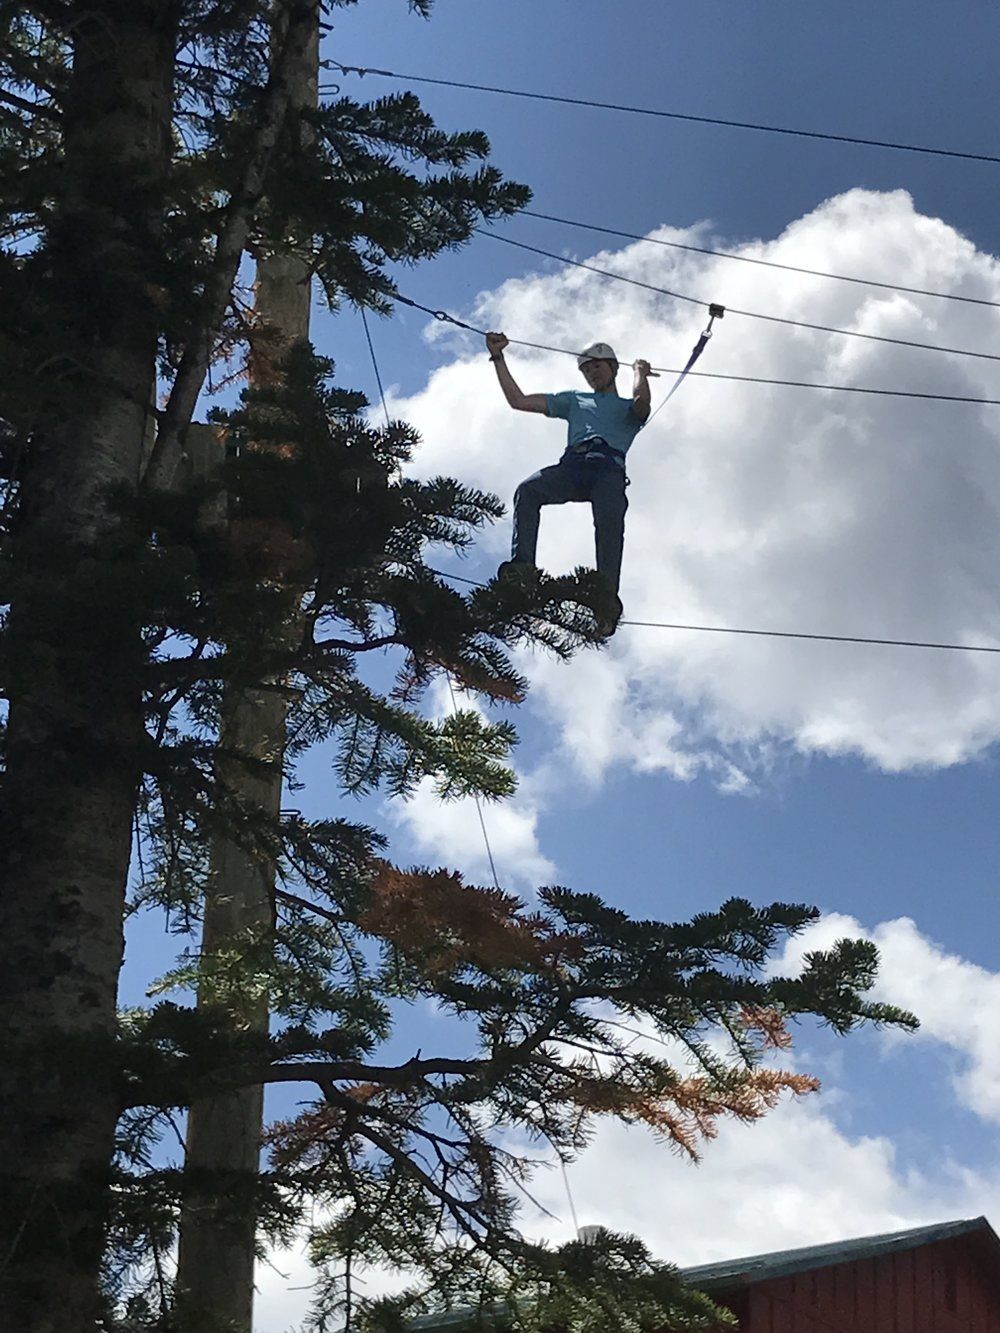 An LCS student participates in a ropes course on a school-sponsored trip to the mountains.